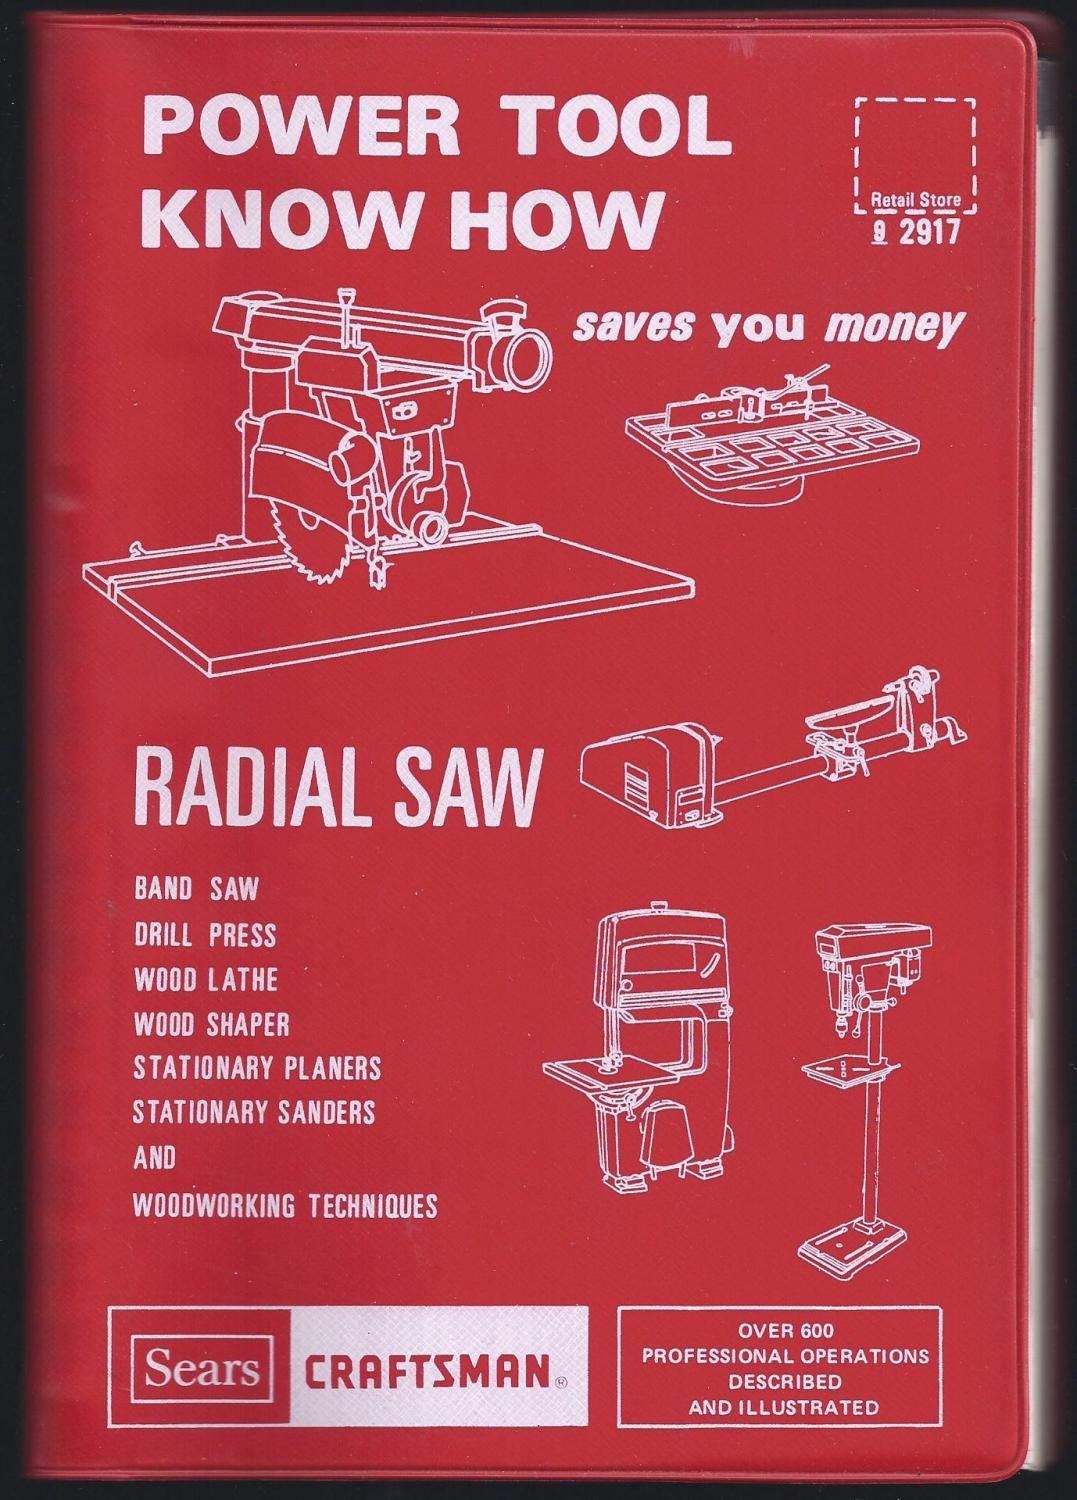 Power Tool Know How - Radial Saw Prepared for Sears Roebuck & Co